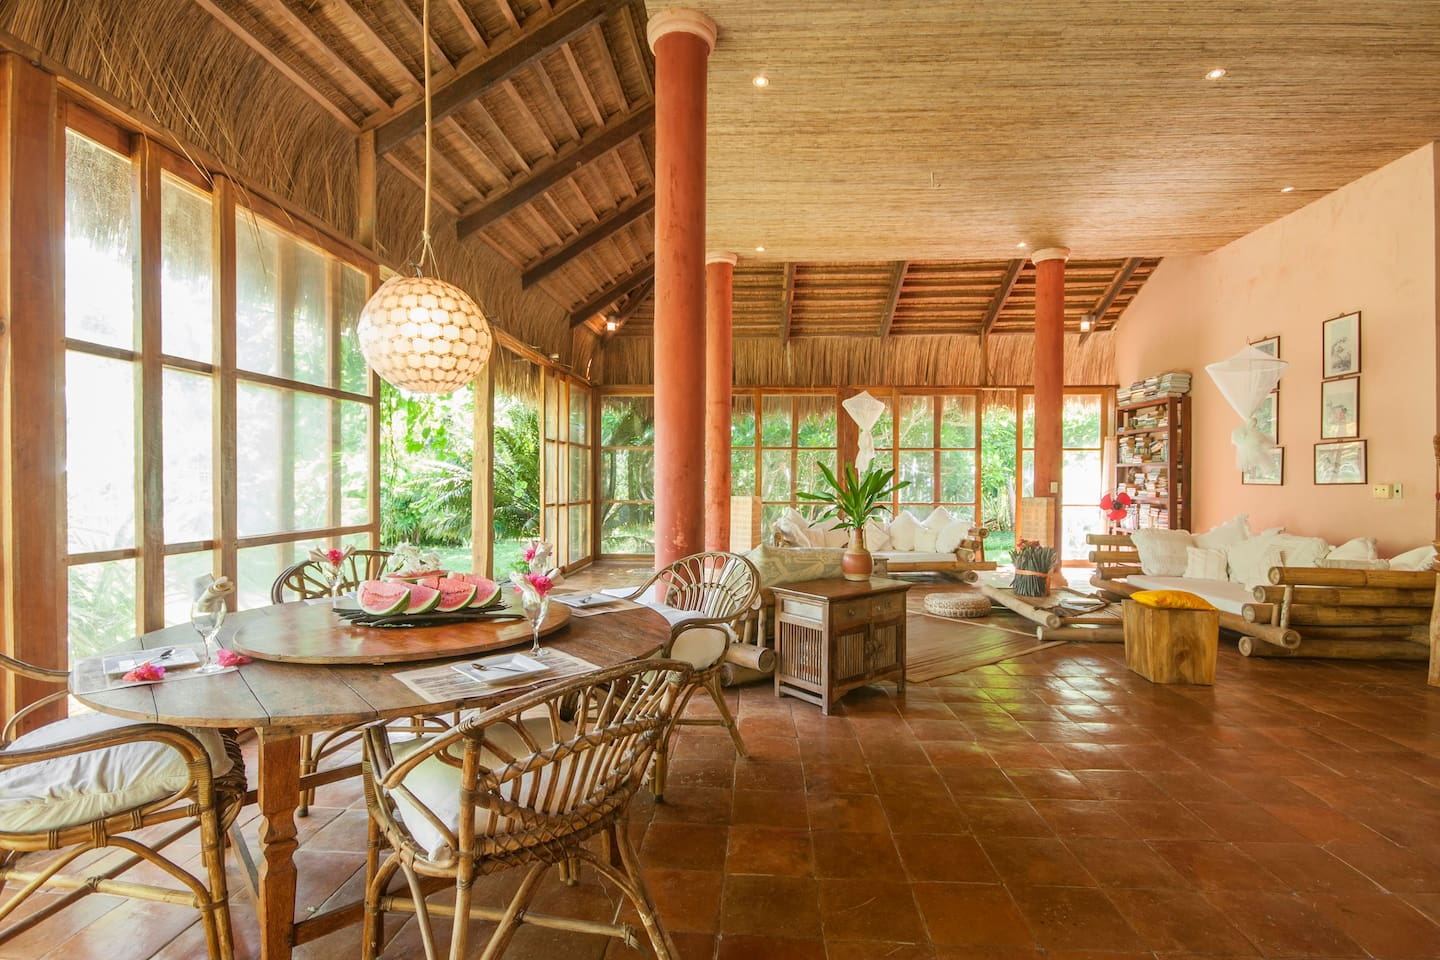 Spacious open living and dining area surrounded by light, a cooling breeze and lush gardens.